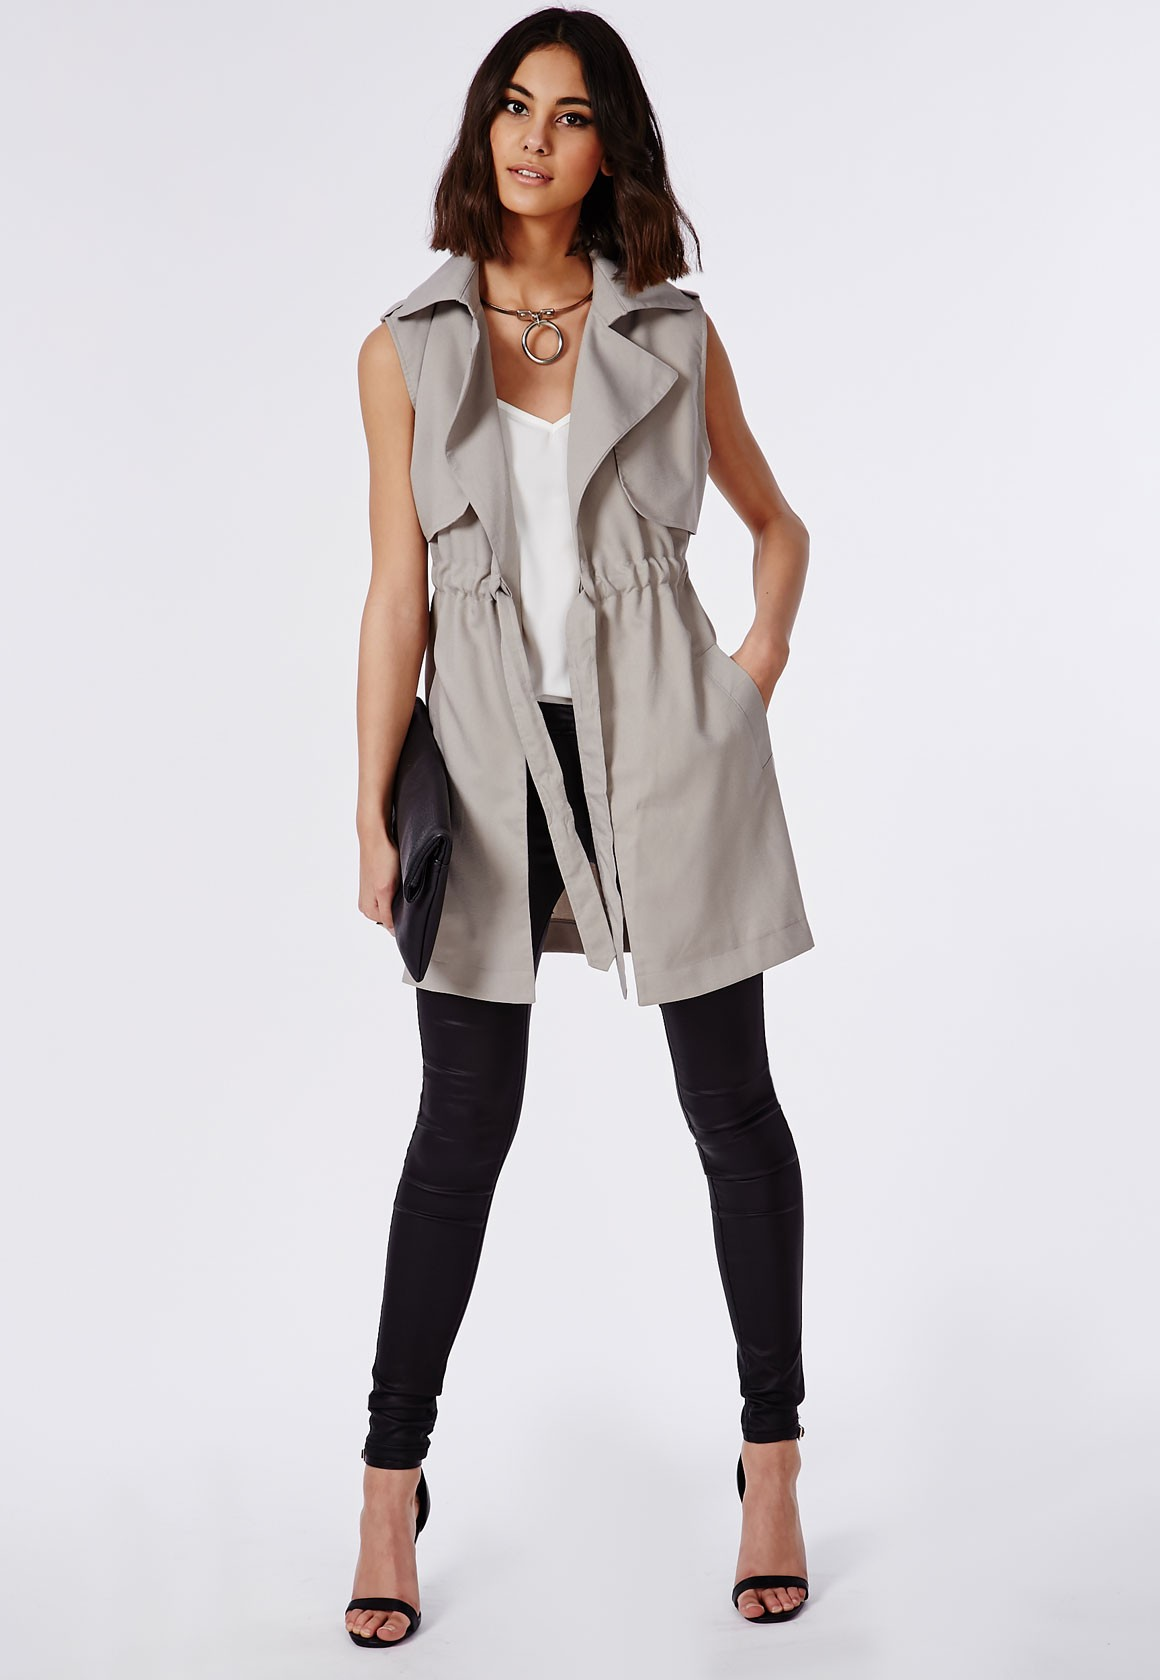 Flowing Trench Coat | Sleeveless Trench Vest | Sleeveless Trench Coat